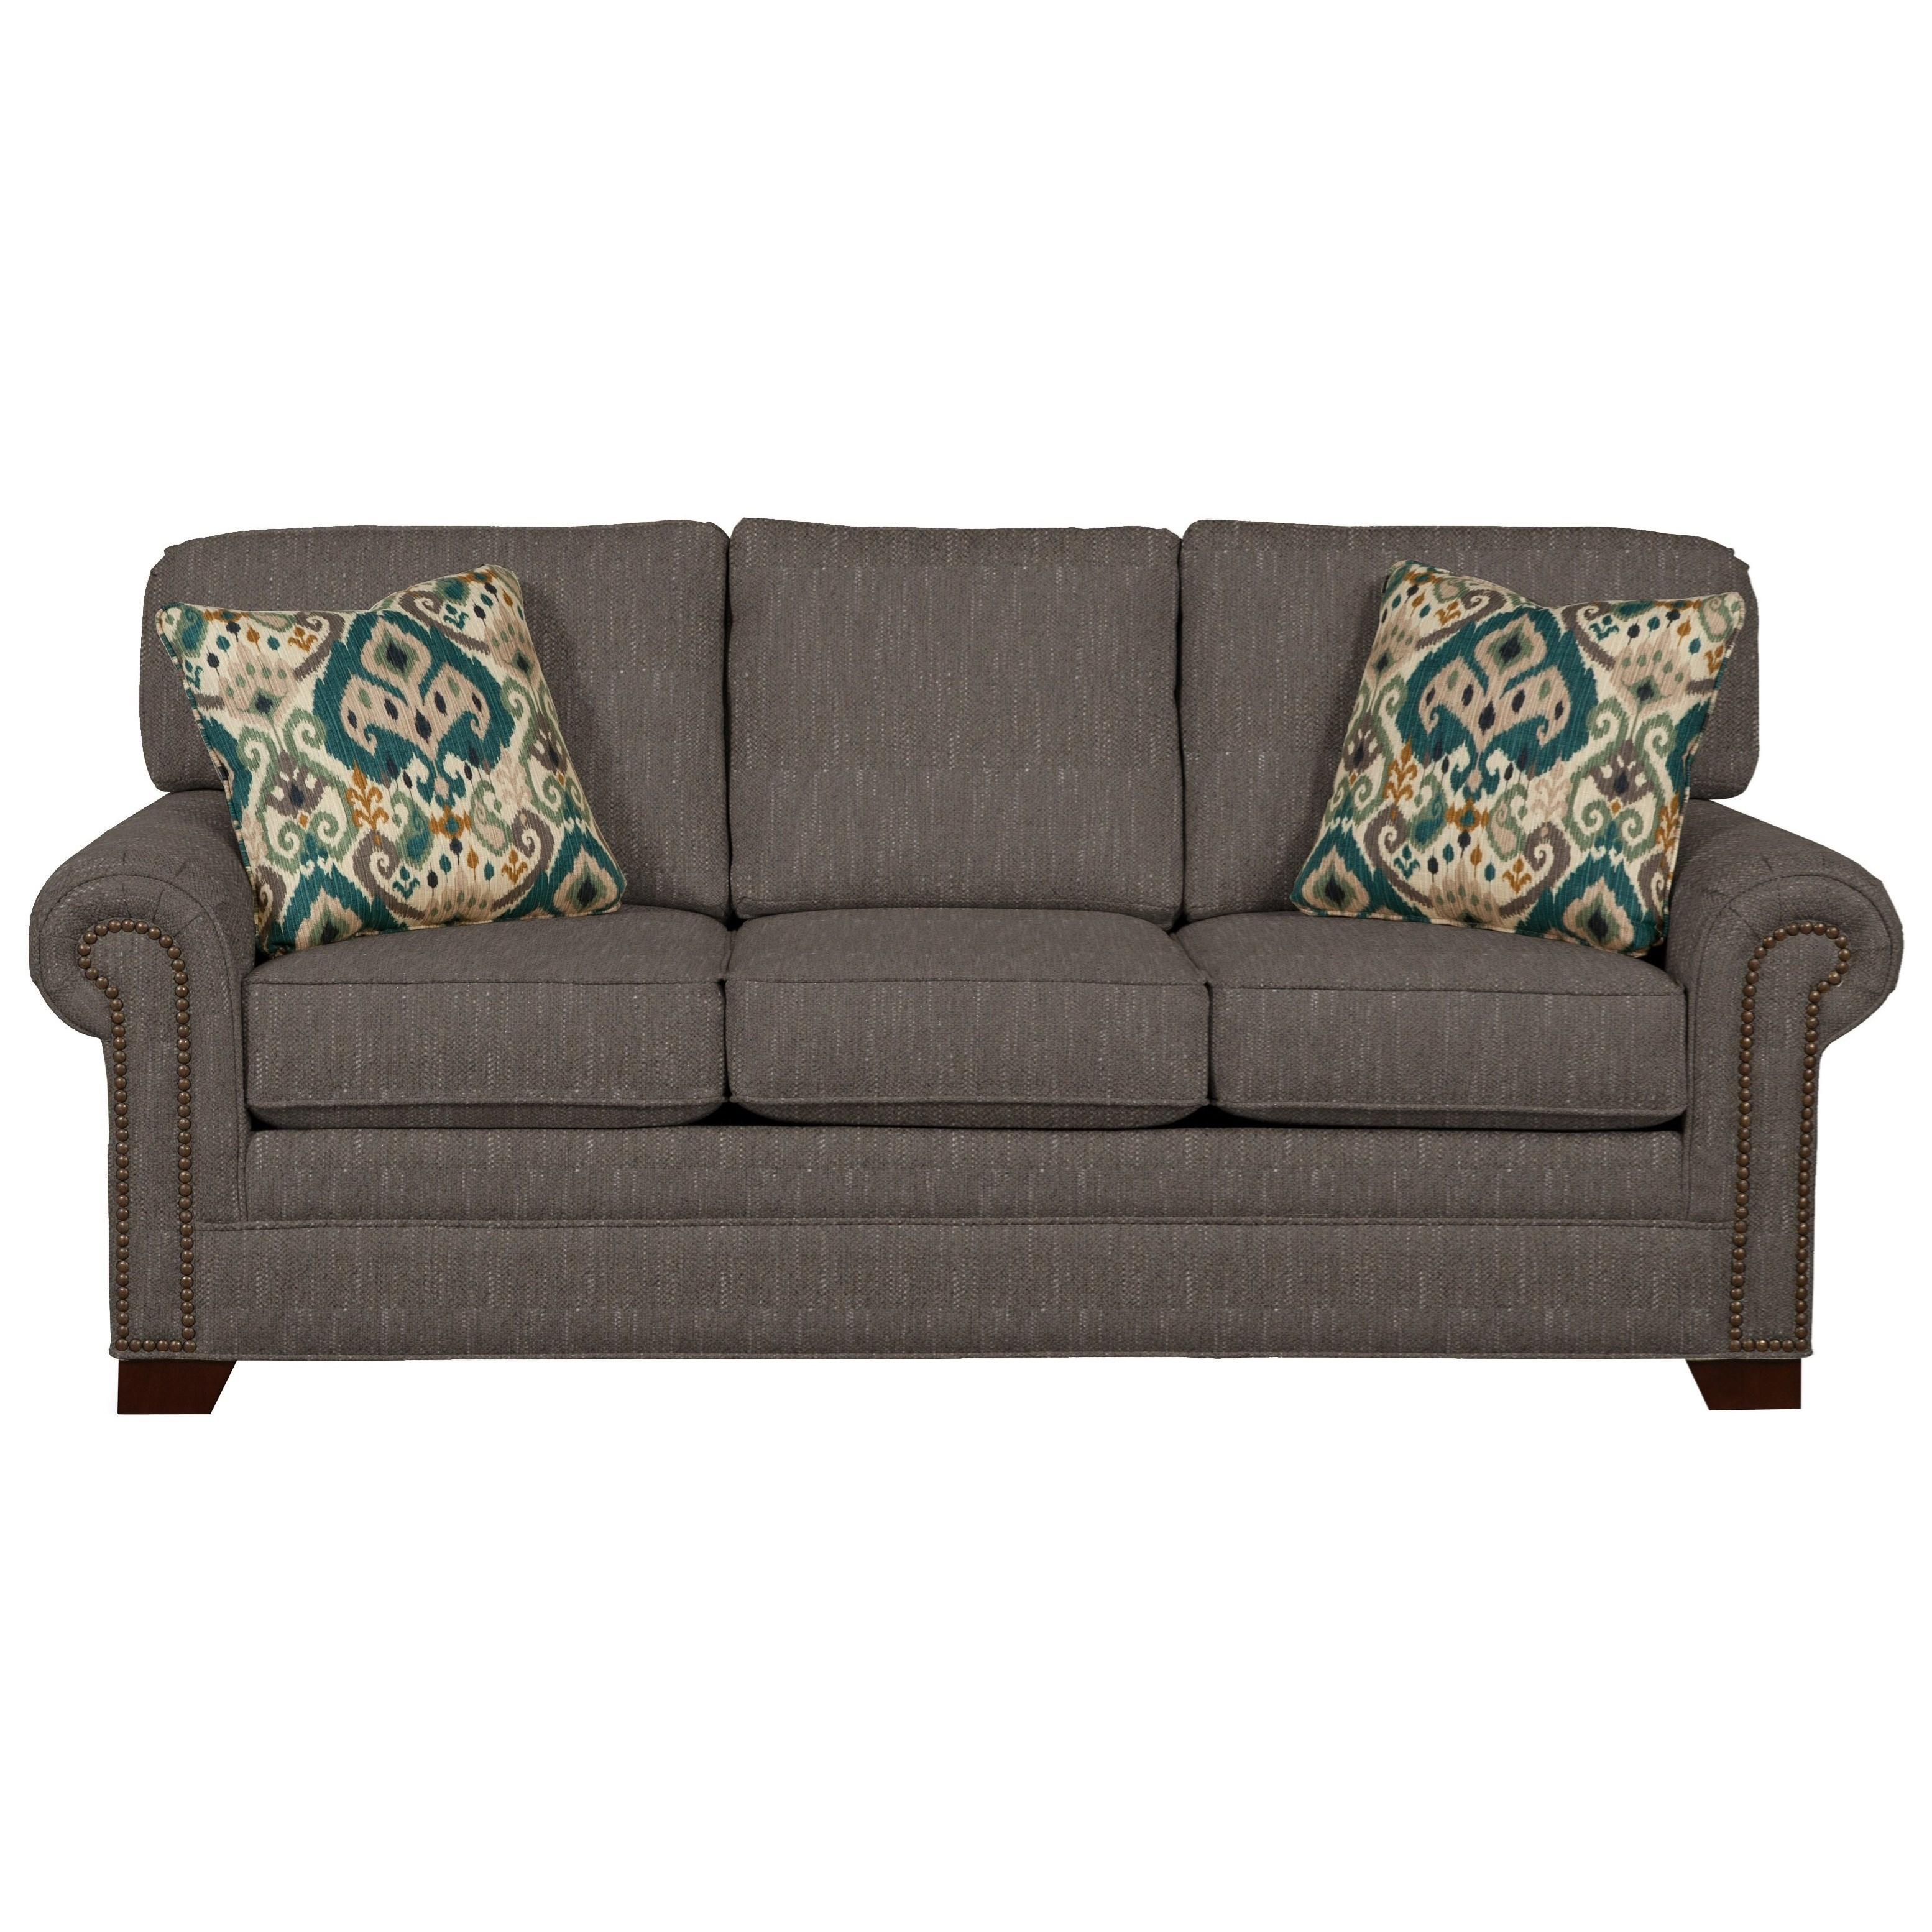 7565 Sleeper Sofa by Craftmaster at Story & Lee Furniture